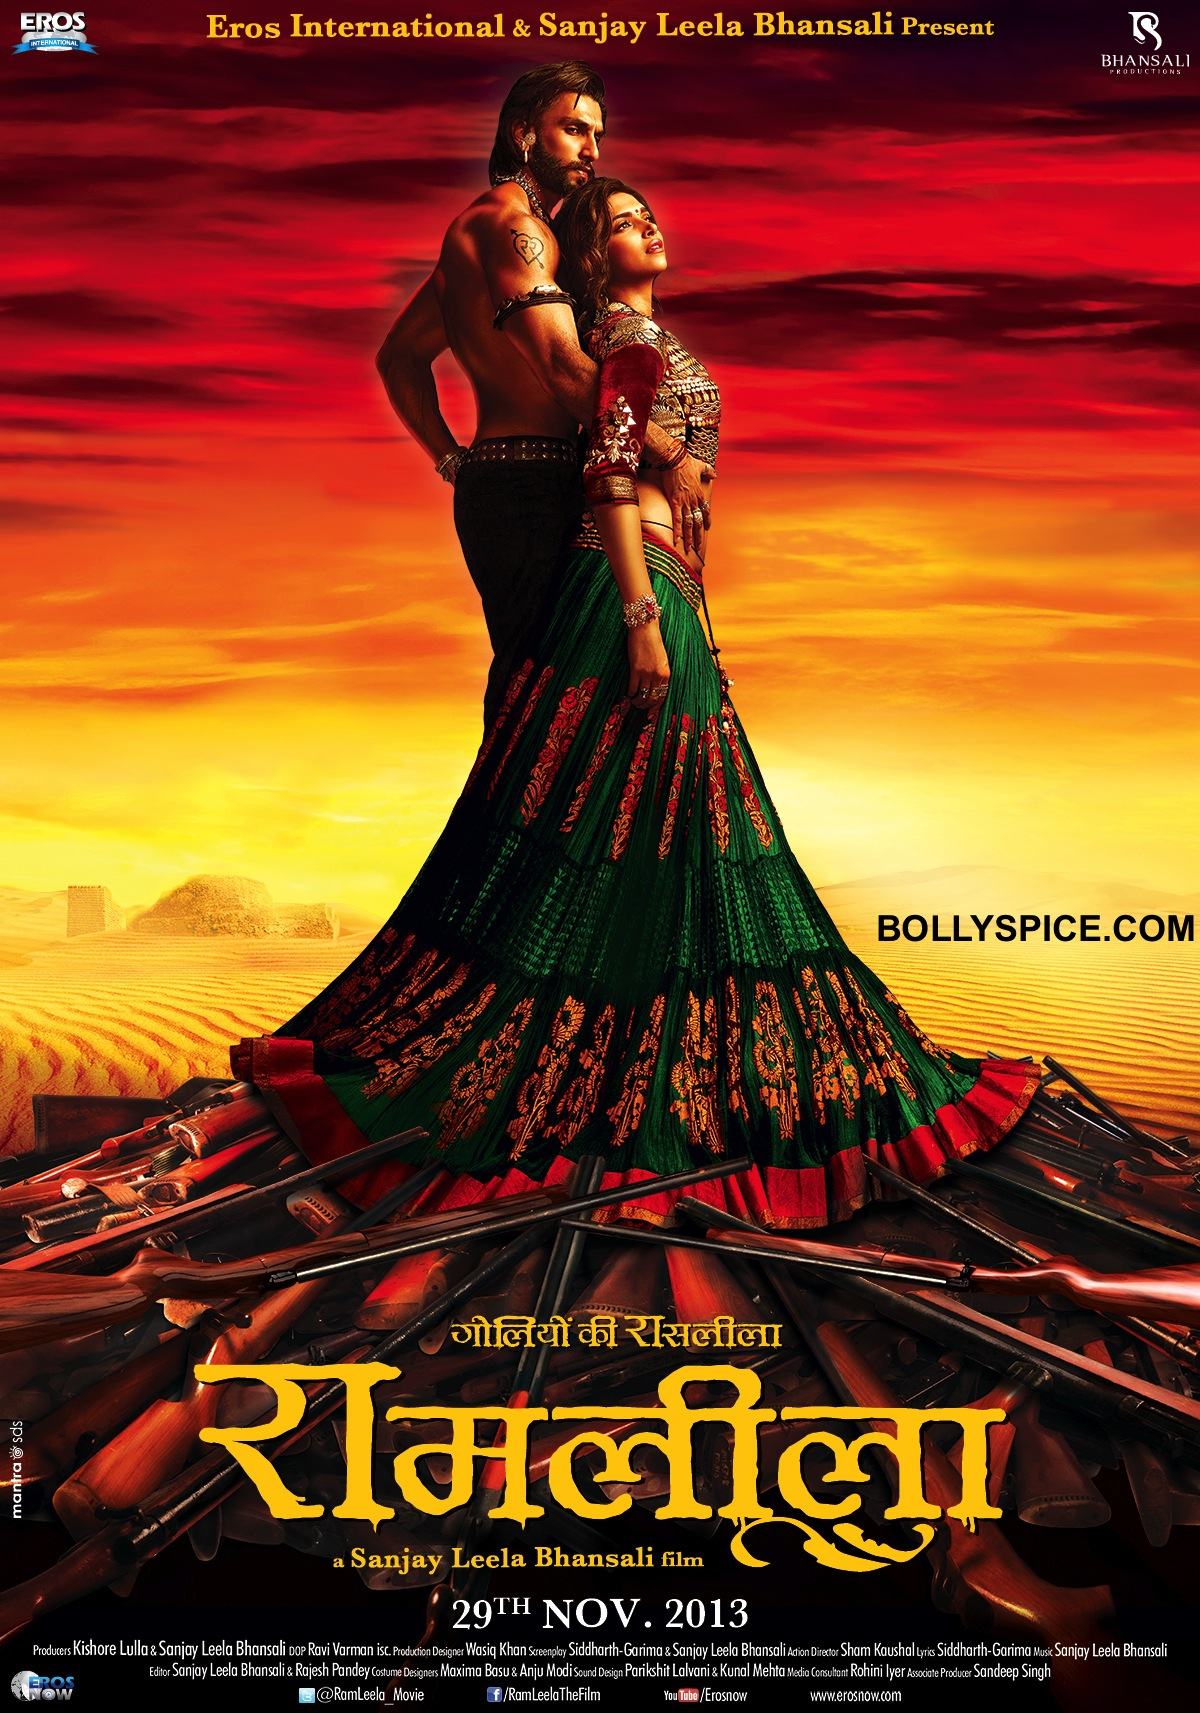 Poster 01 8x12 1 First look of Ranveer and Deepika in Ram Leela!